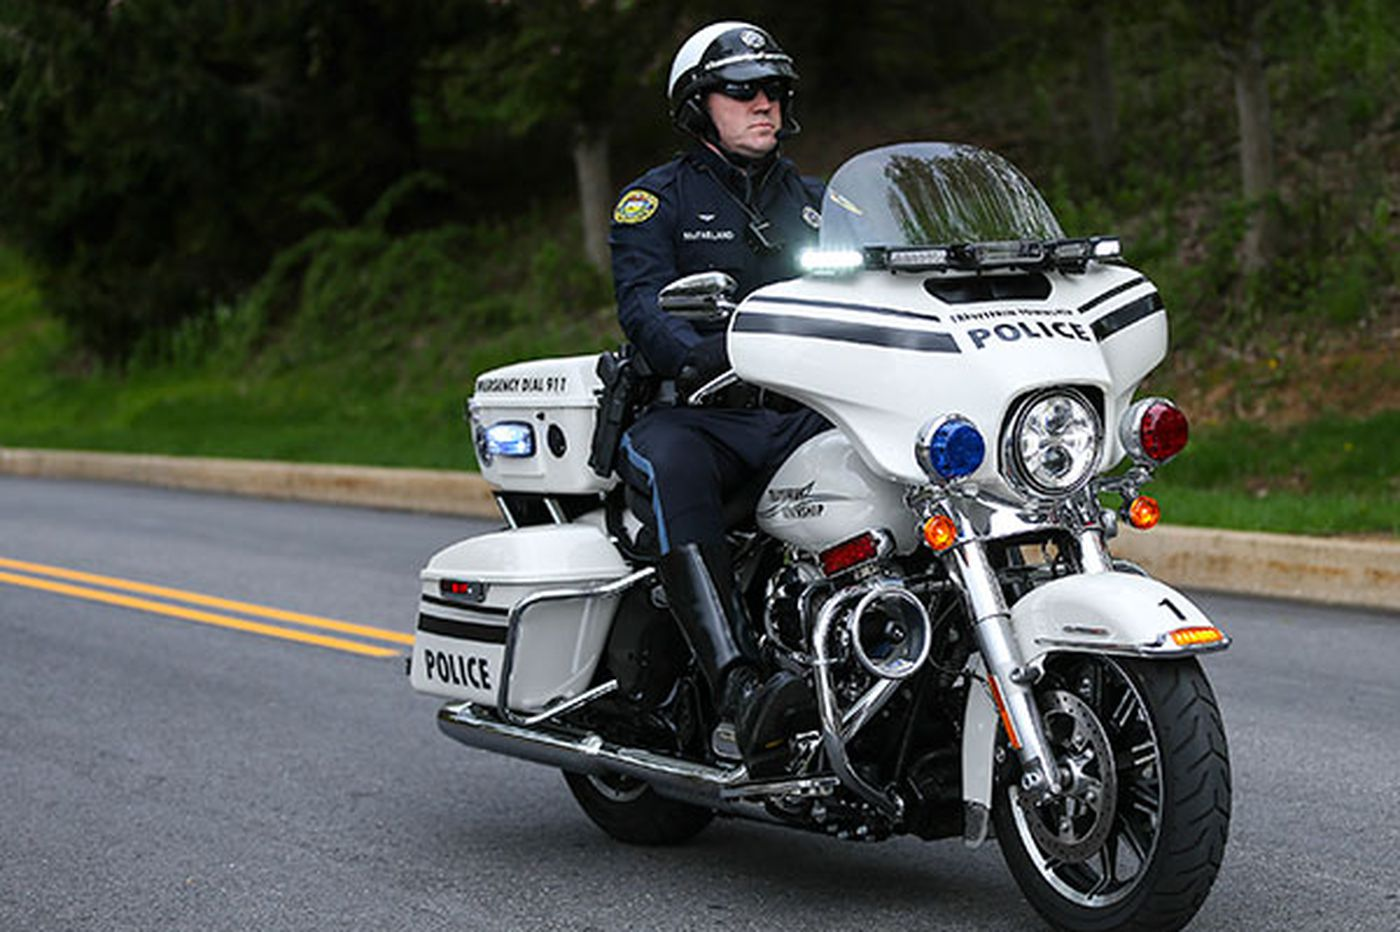 Motorcycles are important again for suburban police